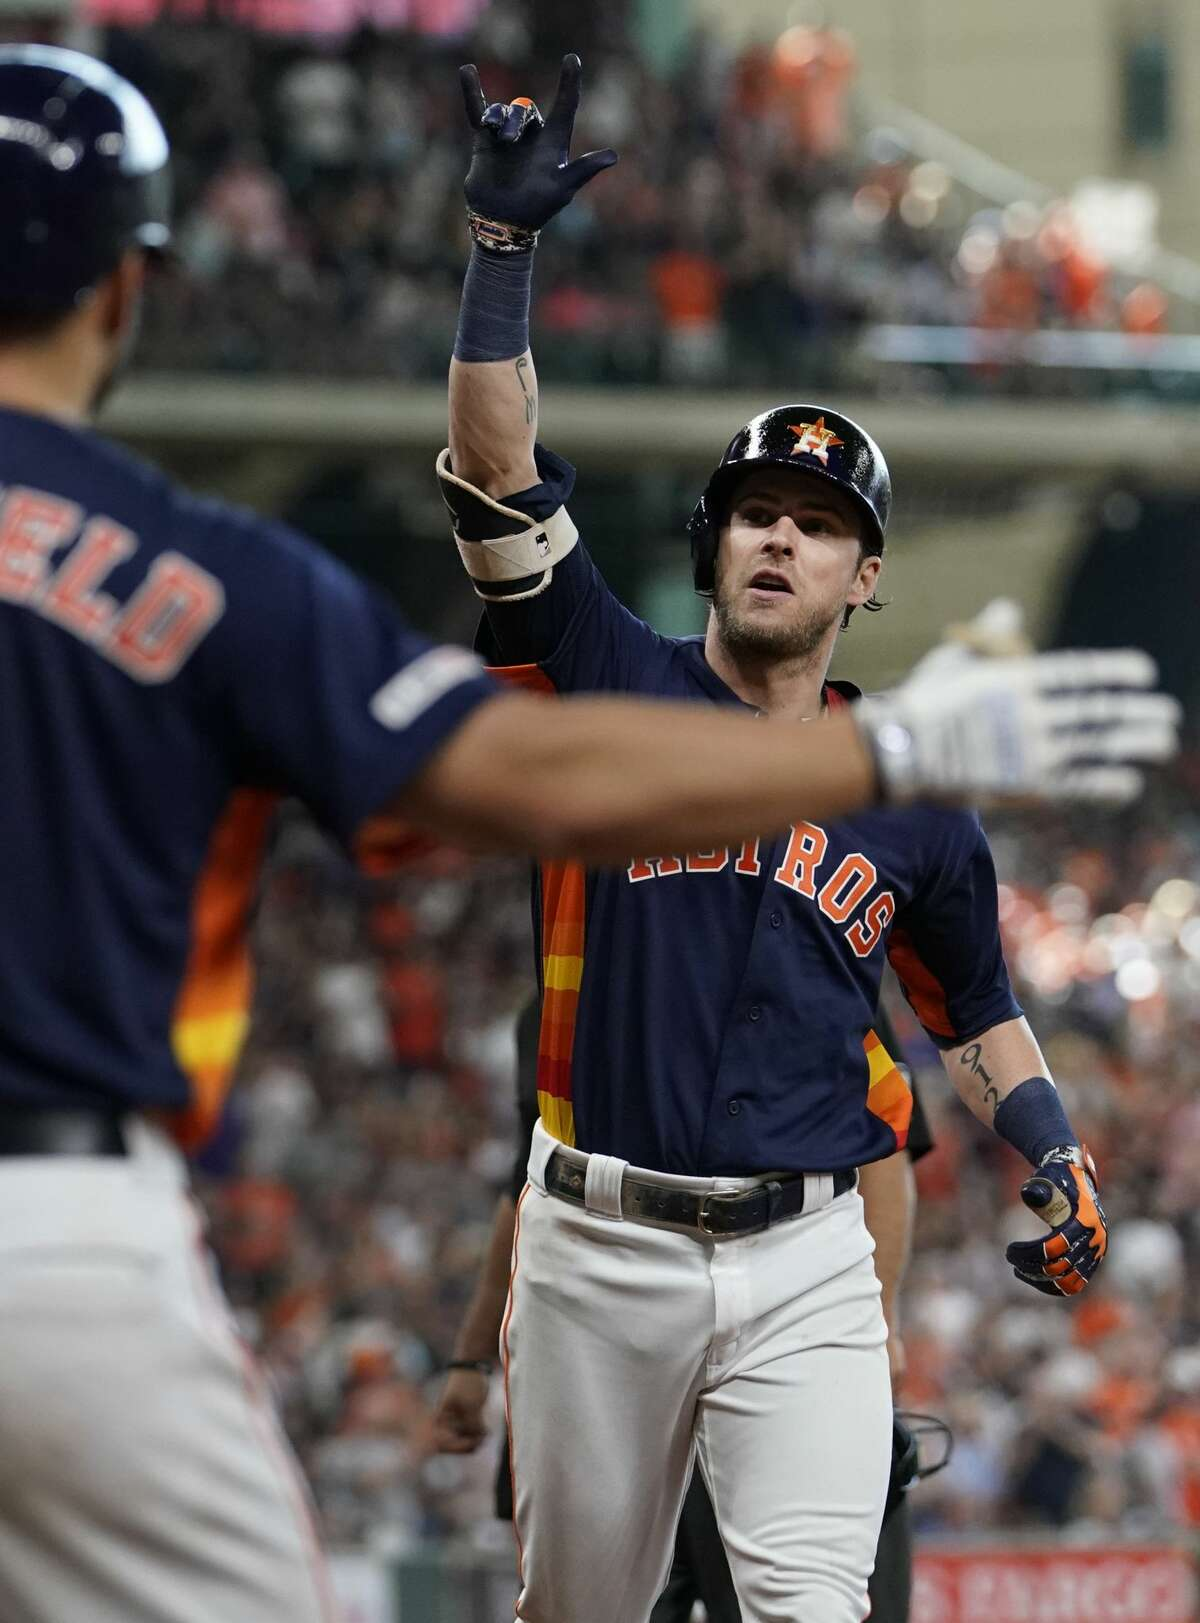 Houston Astros Jack Mayfield, left, celebrates home run hit by Josh Reddick against the Toronto Blue Jays during the sixth inning at Minute Maid Park Saturday, June 15, 2019, in Houston.